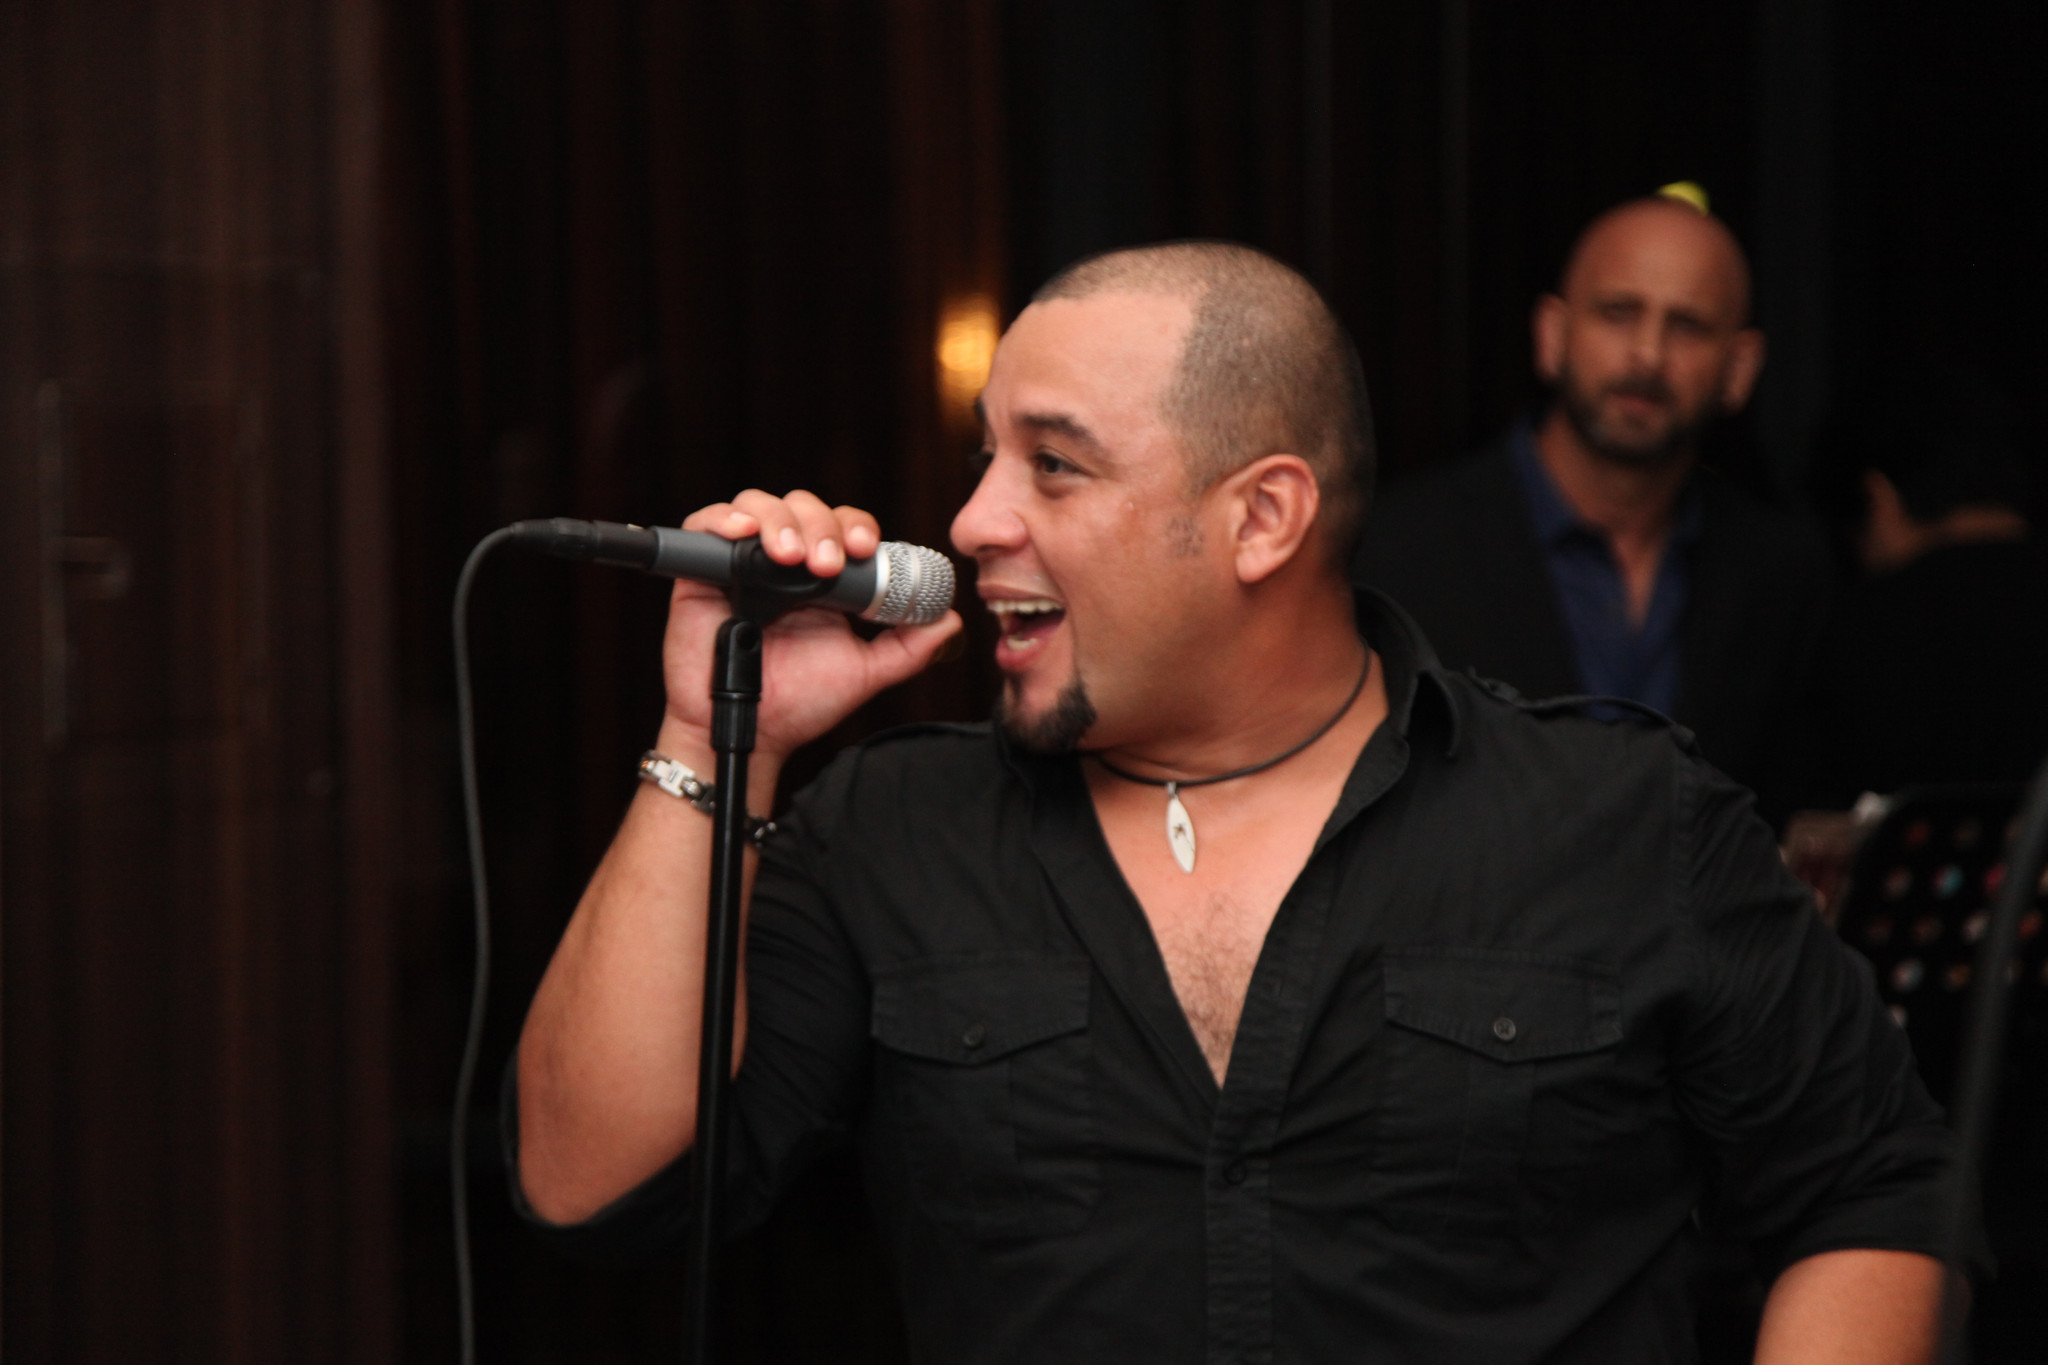 Latin artist Marlow Rosado plays Miami - Marlow Rosado at Brasileiro Restaurant